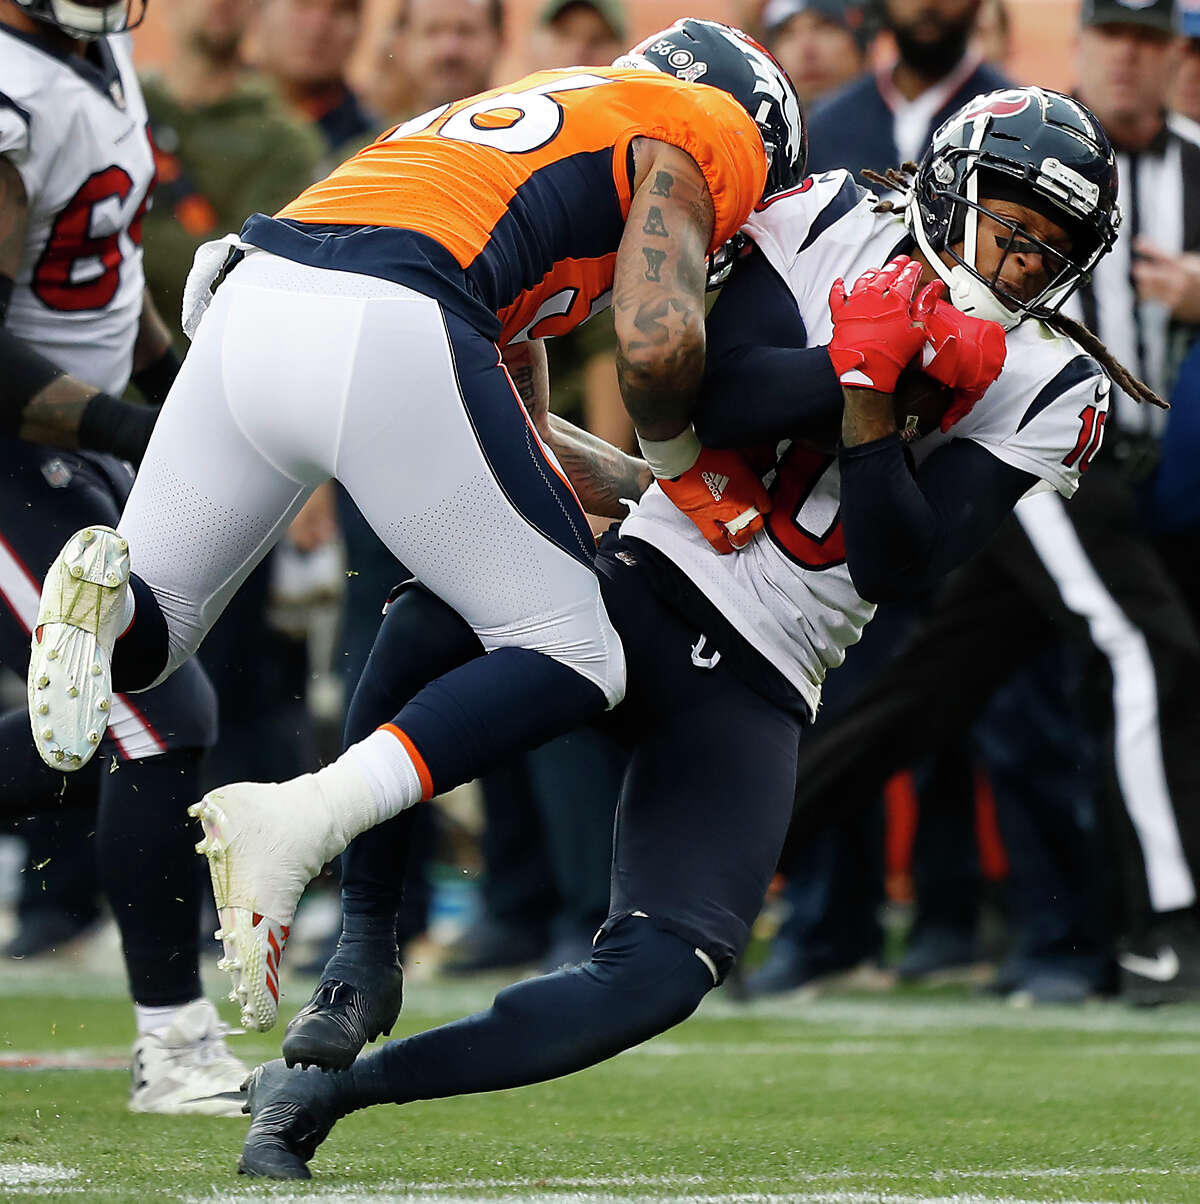 Houston Texans wide receiver DeAndre Hopkins (10) is tackled by Denver Broncos linebacker Shane Ray (56) as Hopkins fights for a first down during the third quarter of an NFL football game at Broncos Stadium at Mile High on Sunday, Nov. 4, 2018, in Denver.